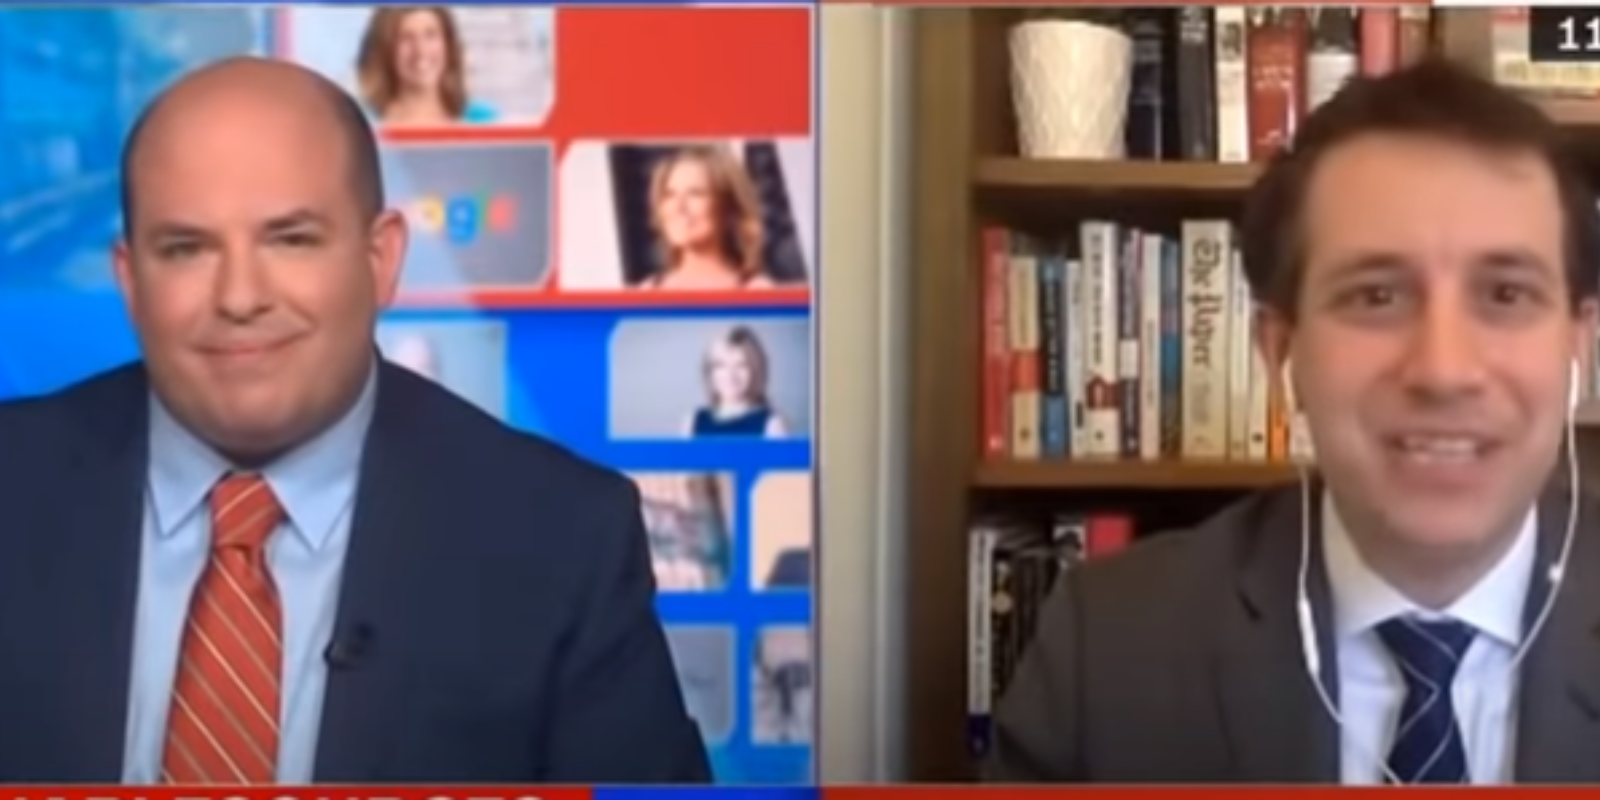 WATCH: CNN's Brian Stelter is really upset that Fox News personalities aren't sharing 'vaccine selfies'